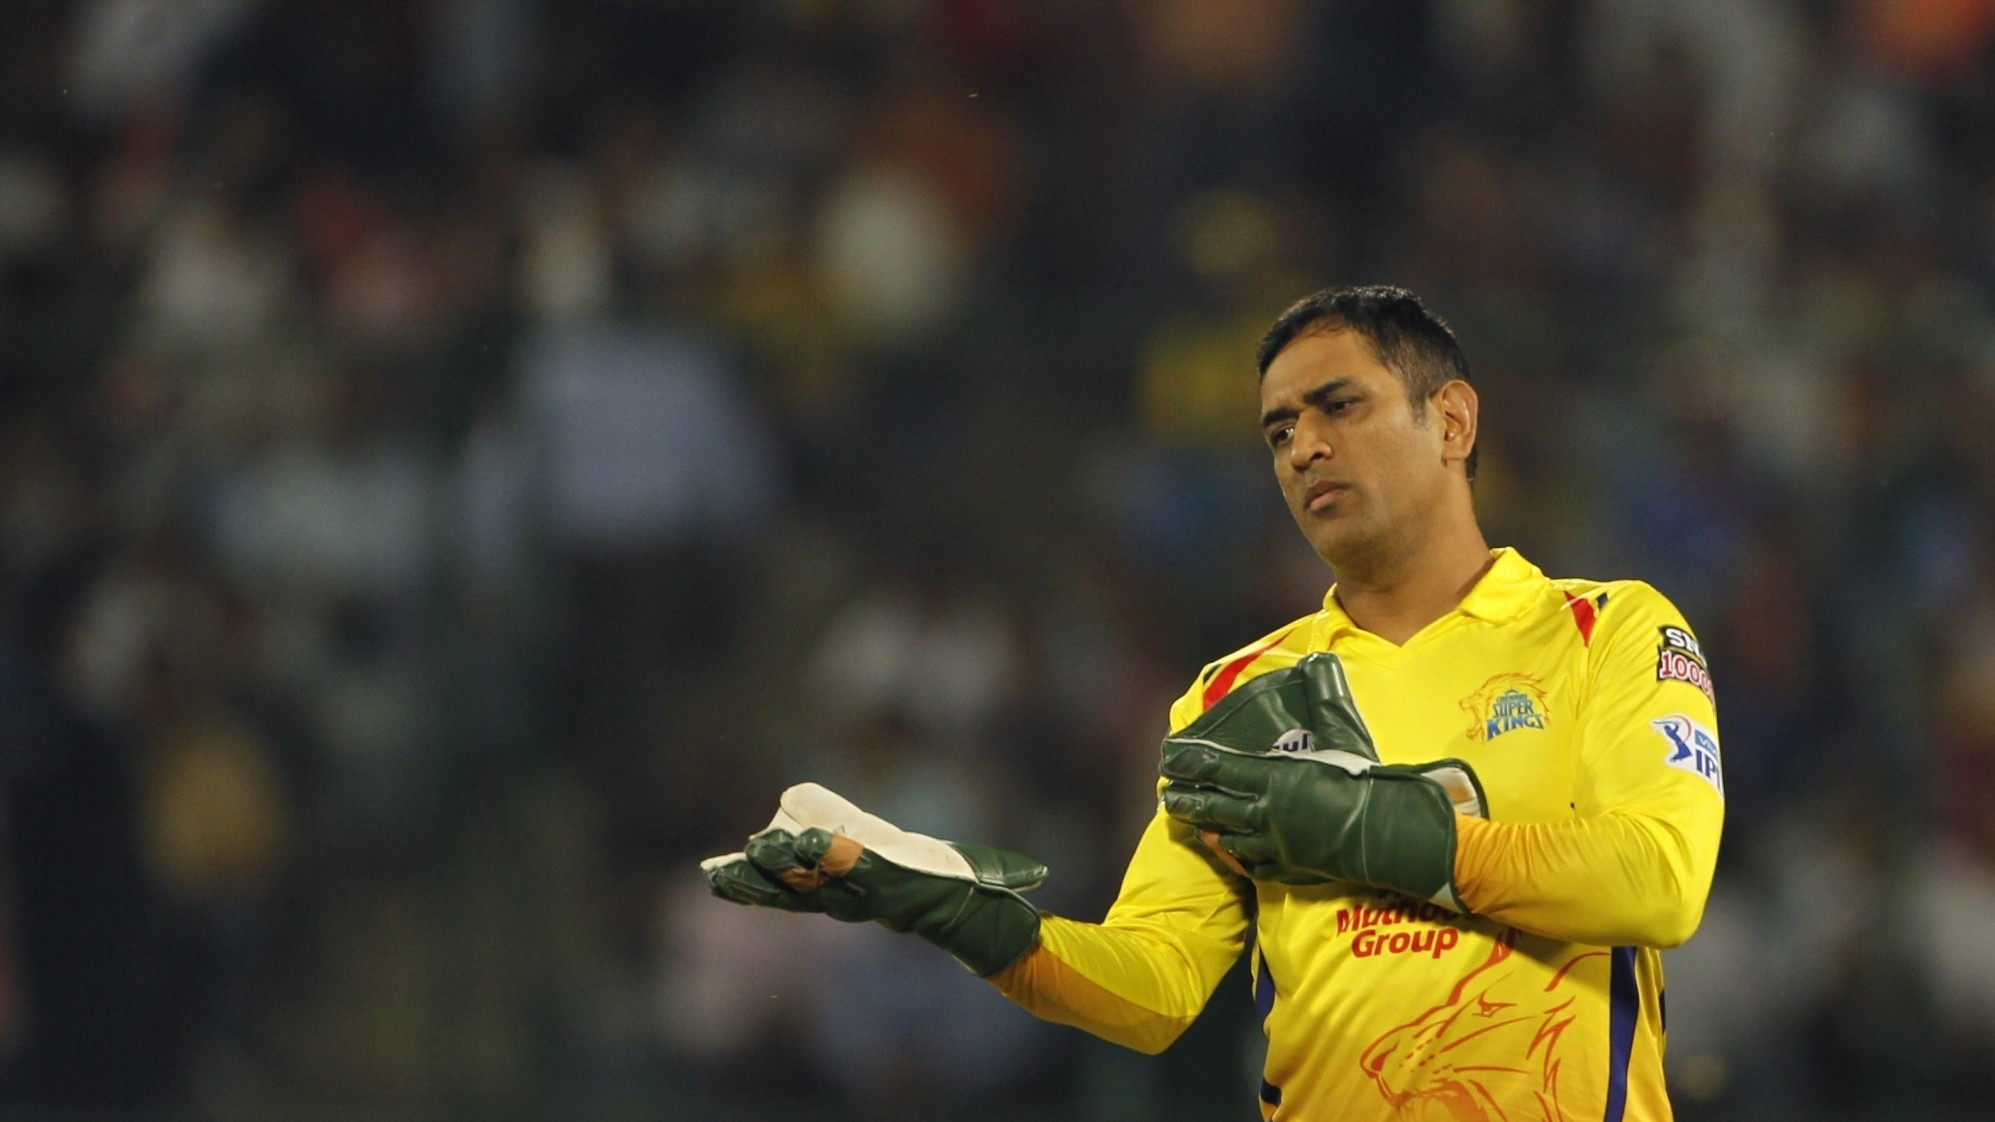 IPL 2019: MS Dhoni rues poor fielding and death bowling after CSK's crushing defeat versus MI